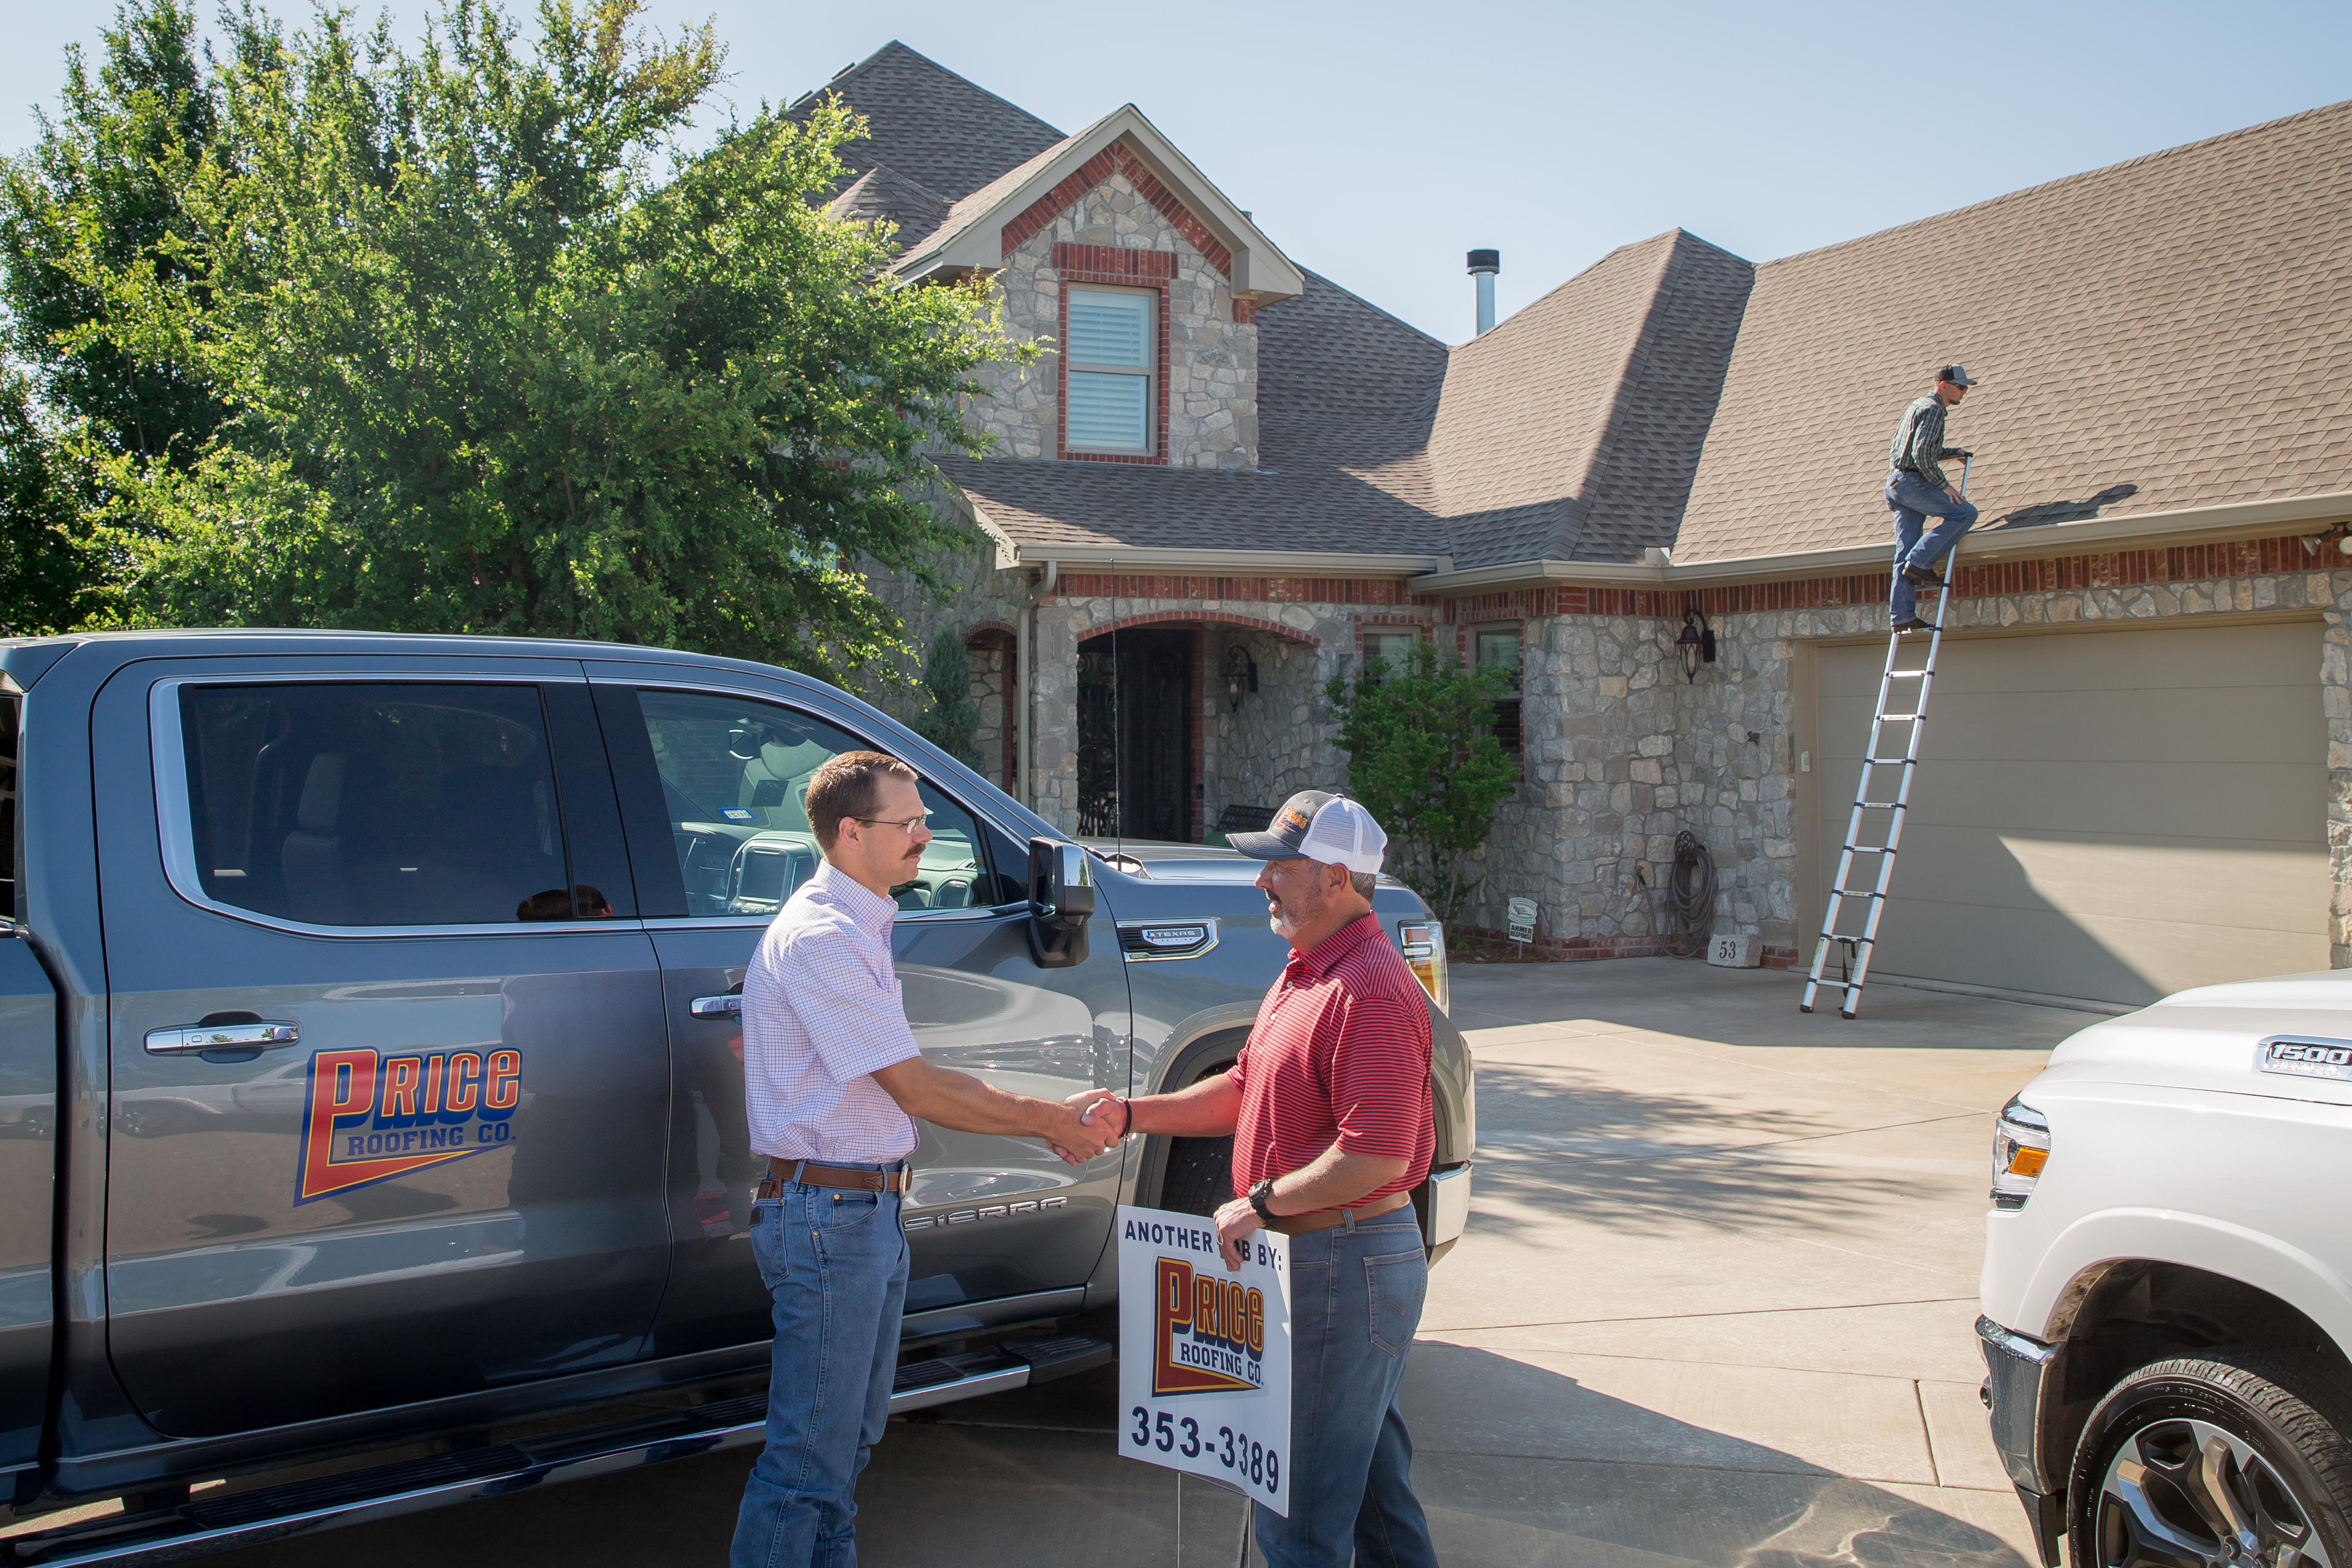 Price Roofing-9594.jpg